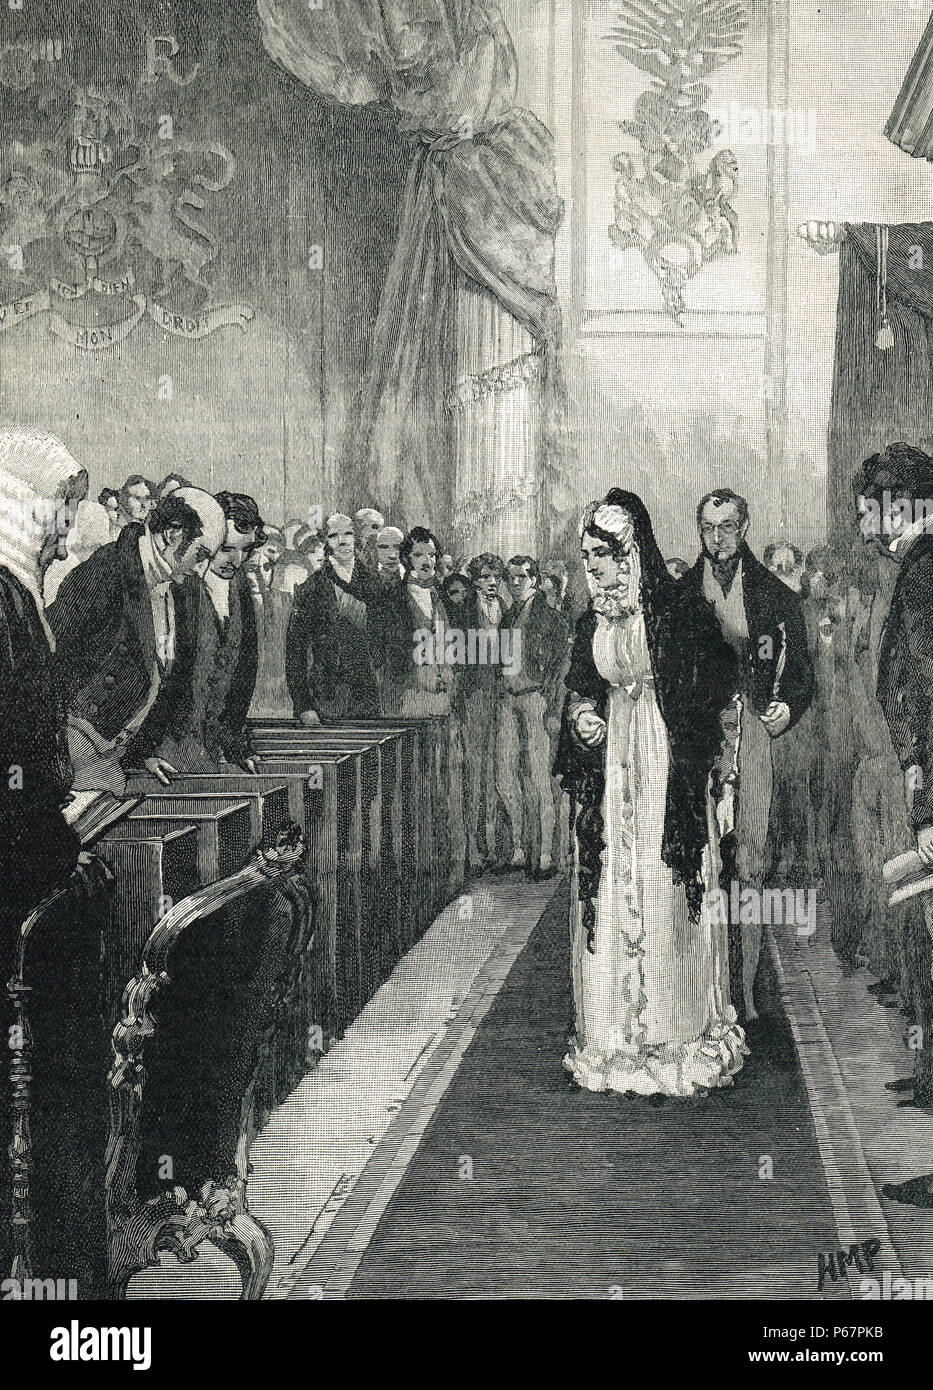 Queen Caroline, entering the House of Lords. The trial of Caroline of Brunswick, Queen consort to King George IV, The Pains and Penalties Bill 1820 - Stock Image